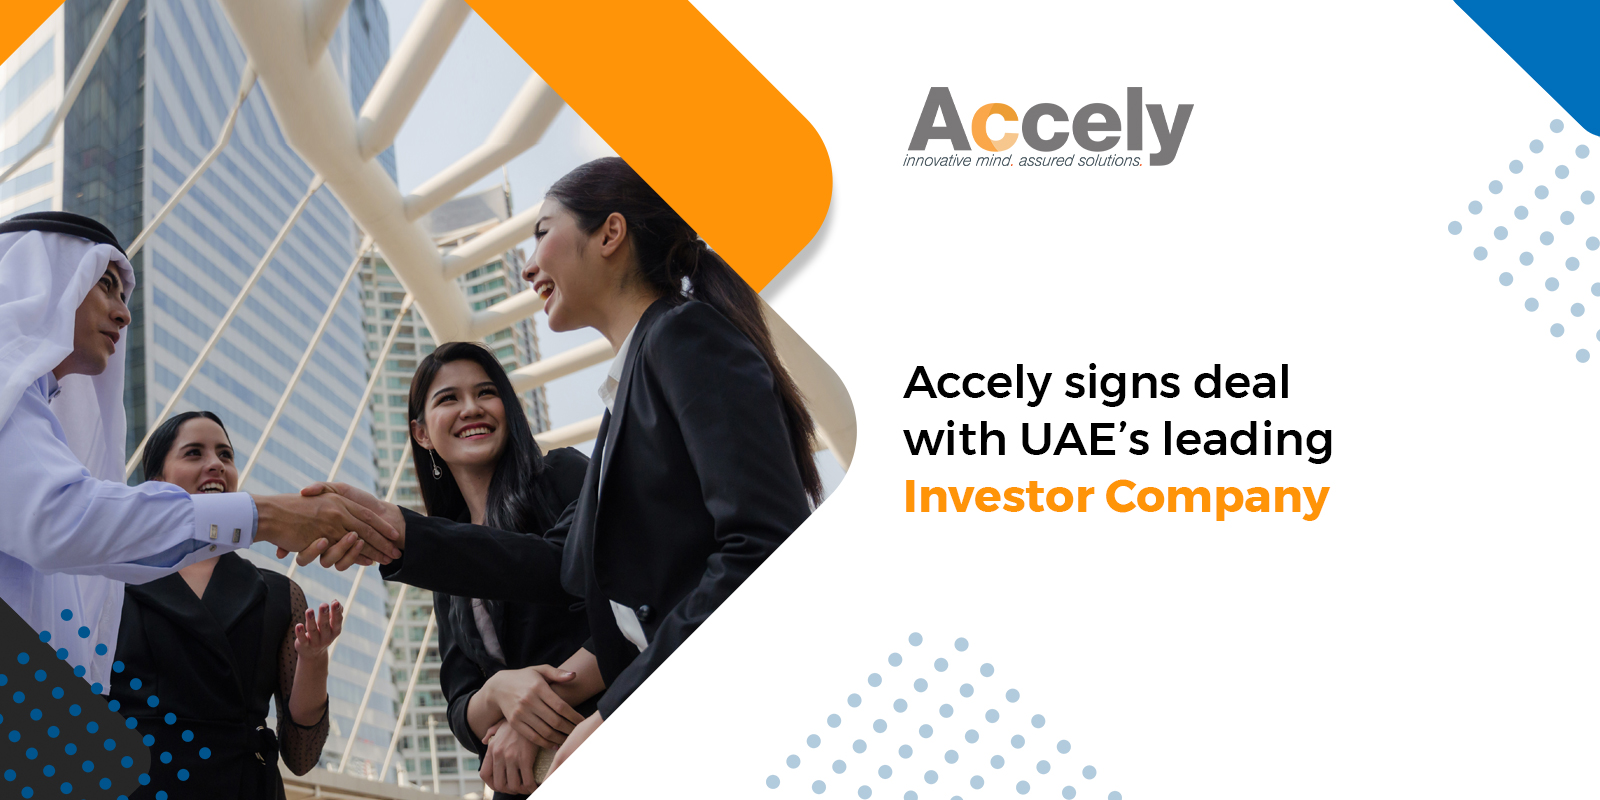 Accely signs deal with UAE's leading Investor Company